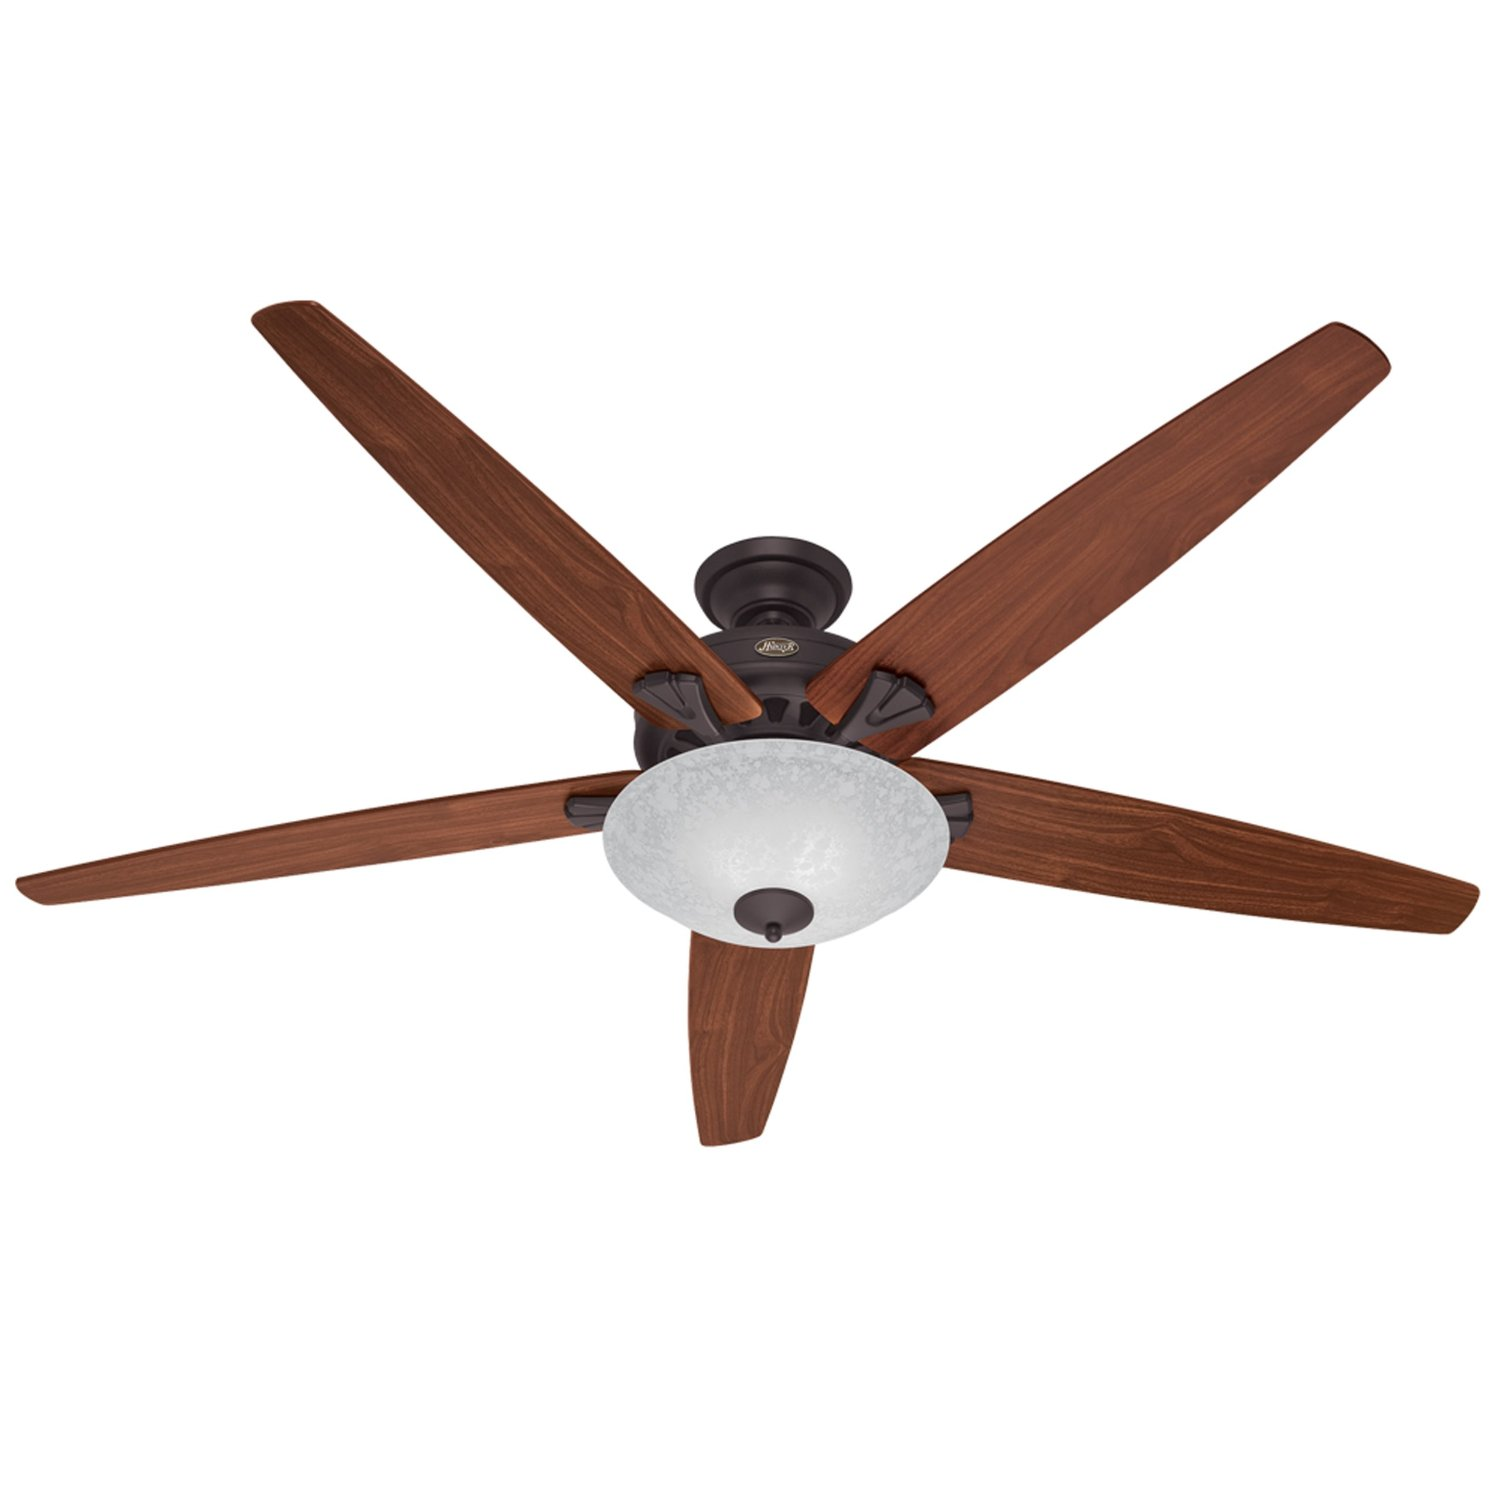 Oversized Ceiling Fans 5 Best Large Ceiling Fans Tool Box